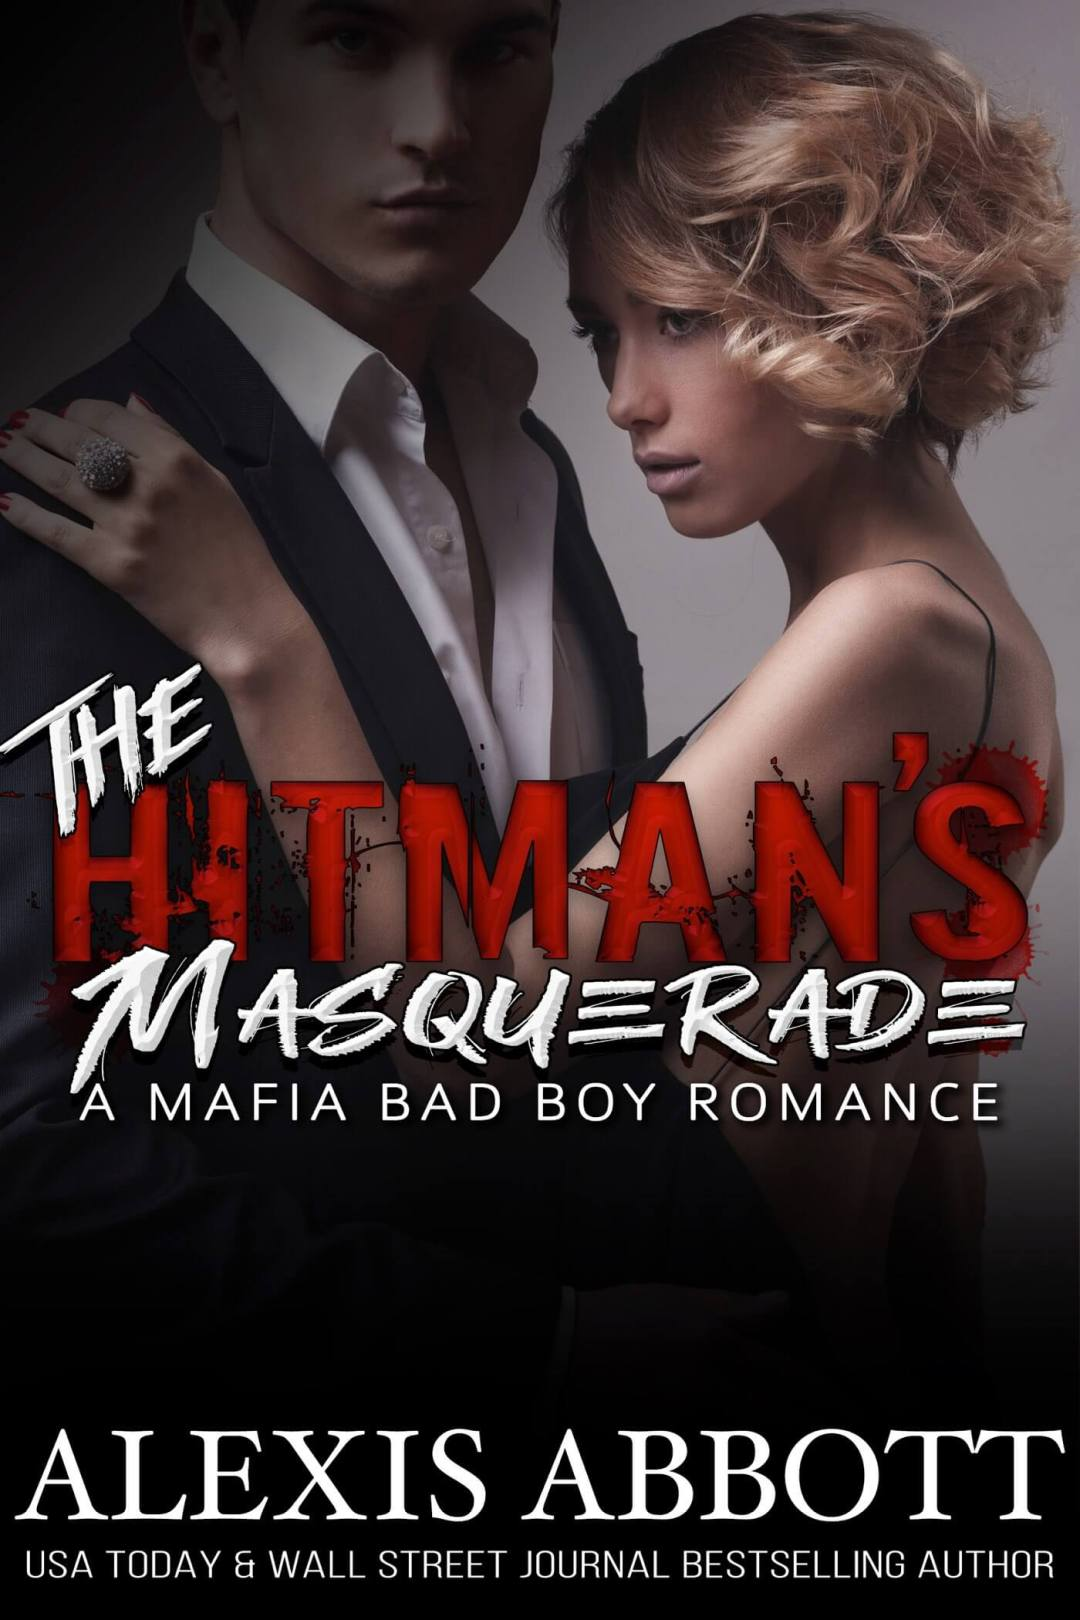 Alexis Abbott - The Hitman's Masquerade